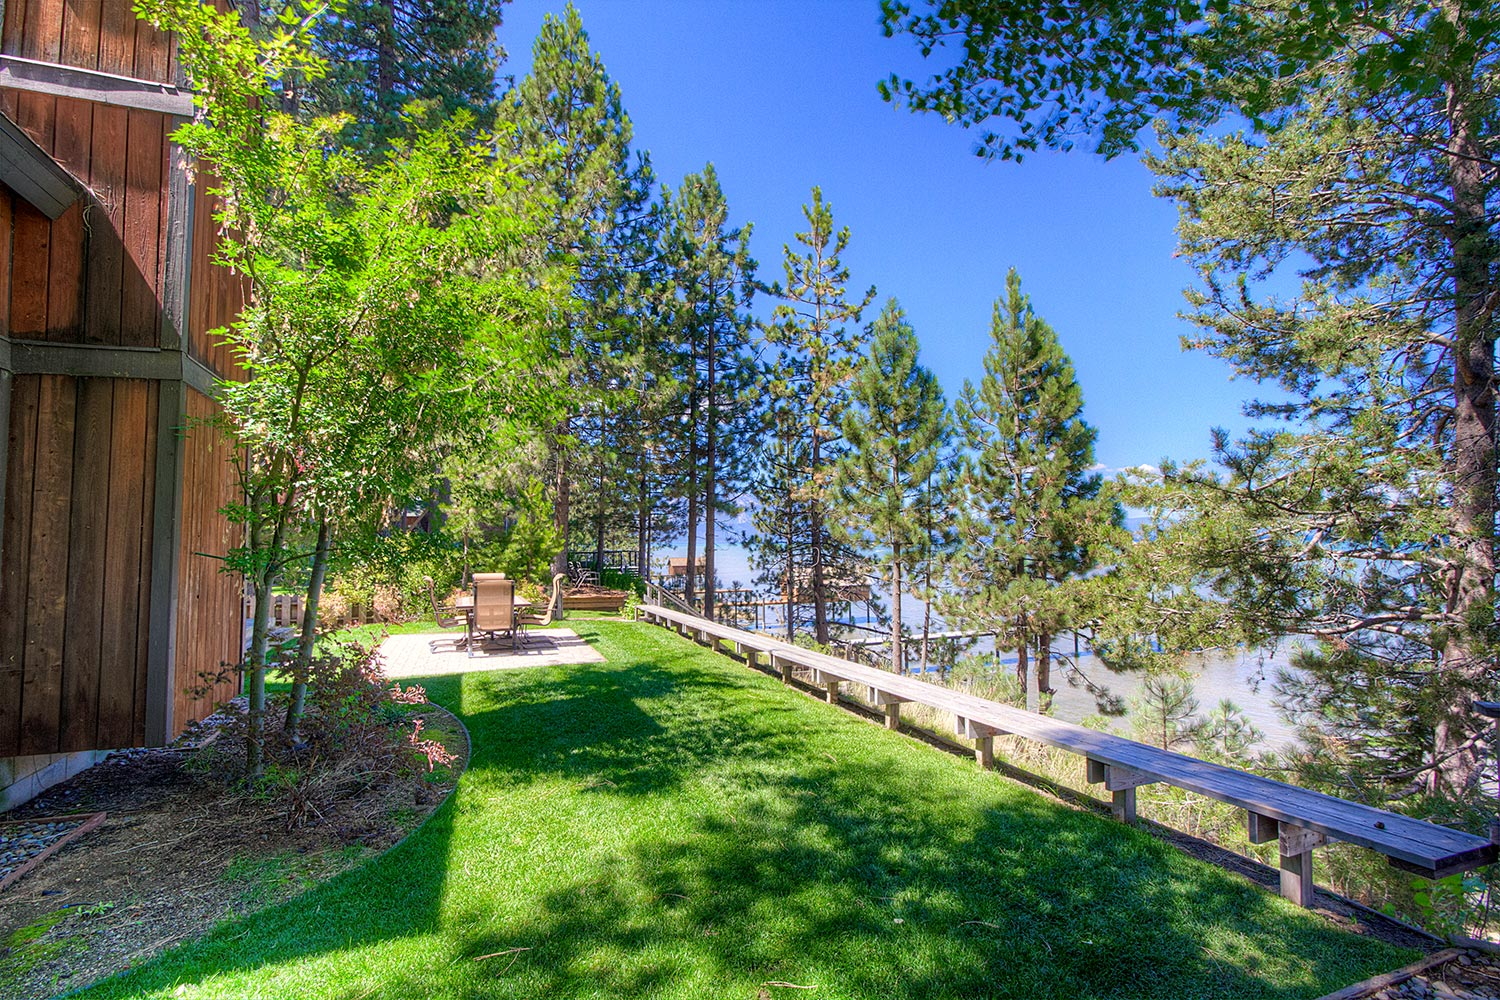 old buoy lake cabins rentals on the cove water beachfront lakefront rental cabin zephyr tahoe